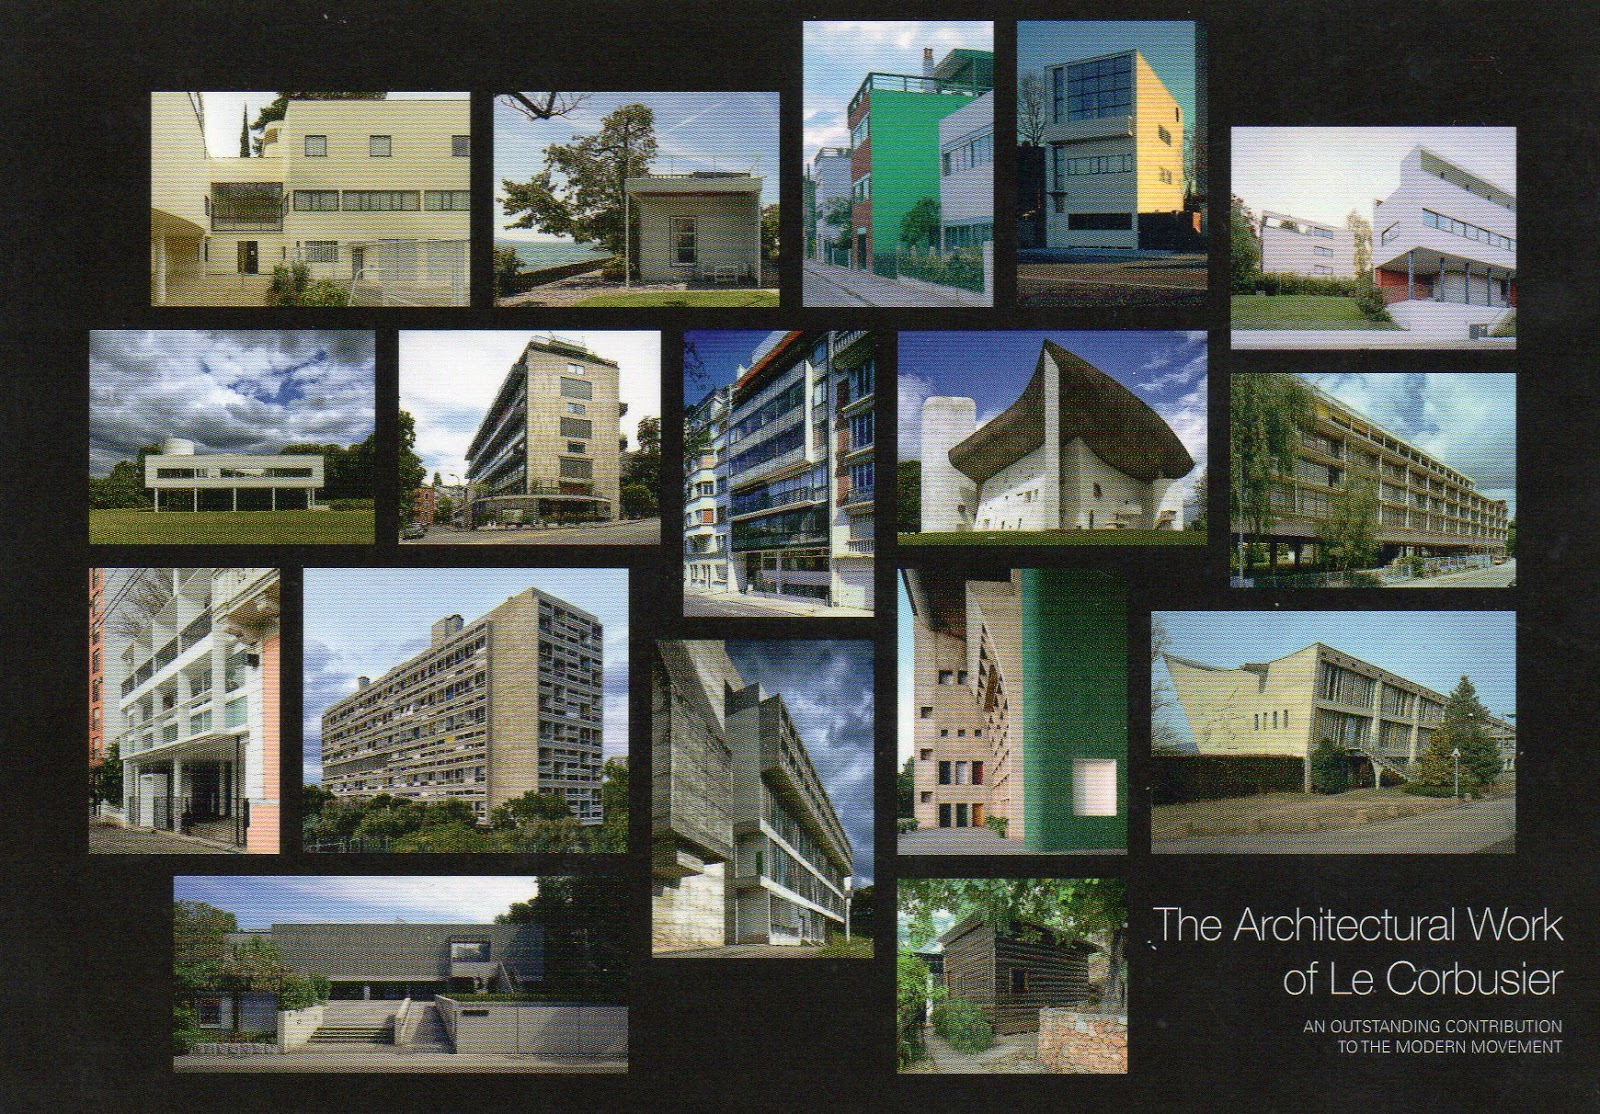 Unesco Postcards Collection By Dannyozzy The Architectural Work Of Le Corbusier An Outstanding Contribution To The Modern Movement